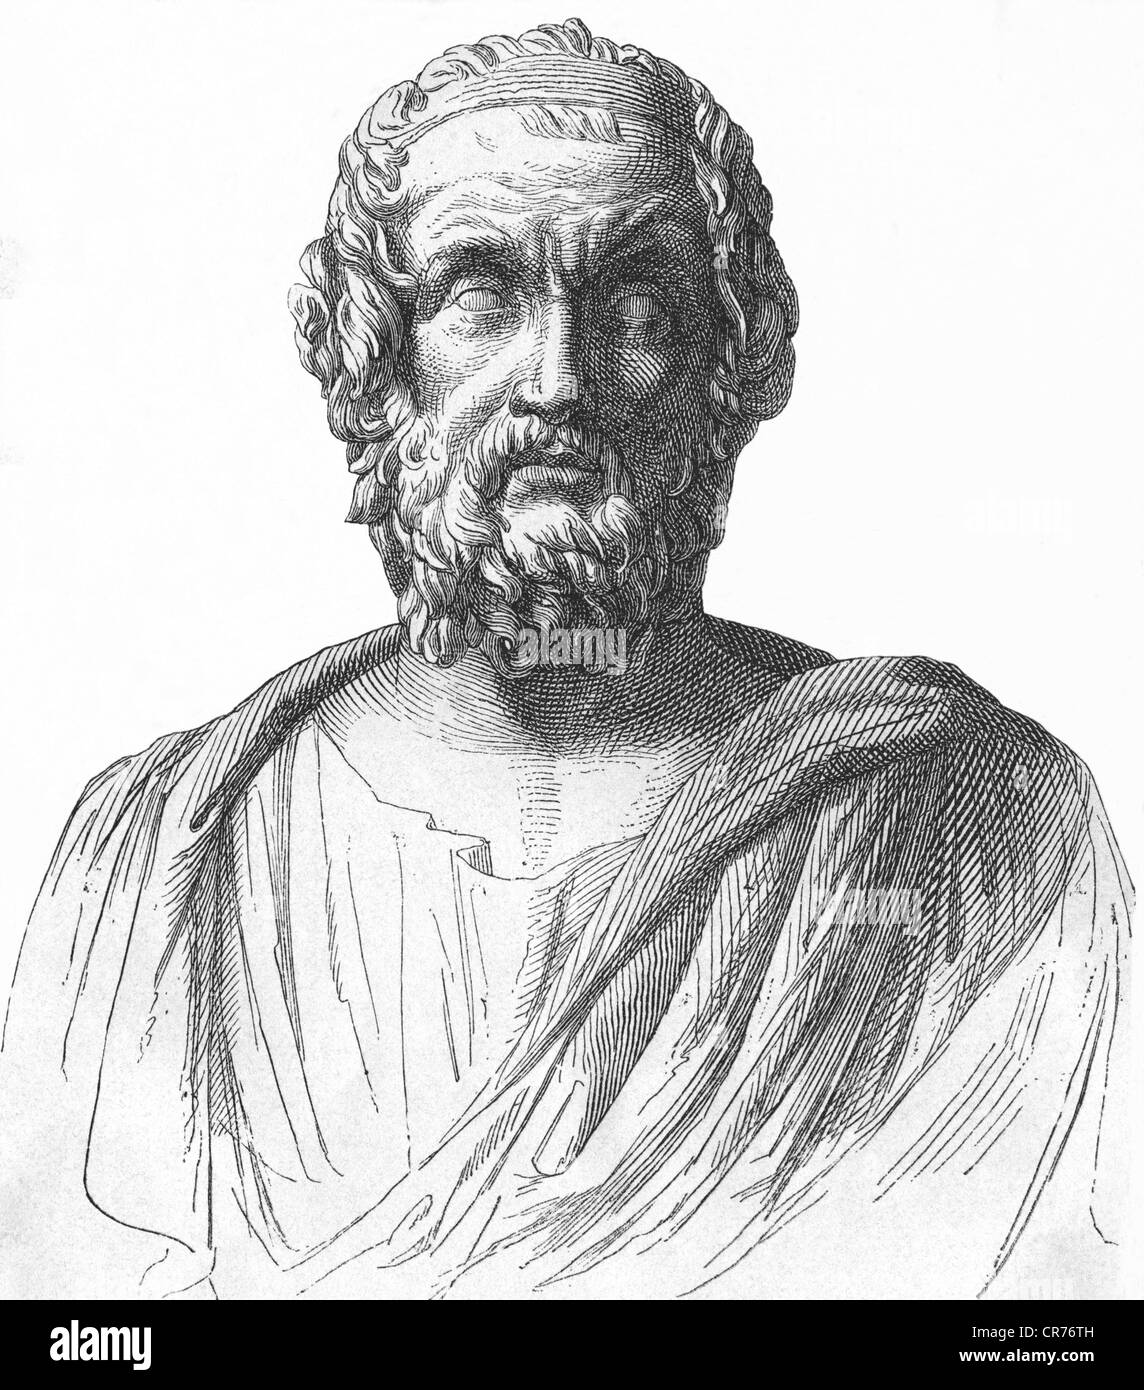 Homer, greek poet, about 800 B.C., portrait, wood engraving from: 'General history of the world for all people - Stock Image